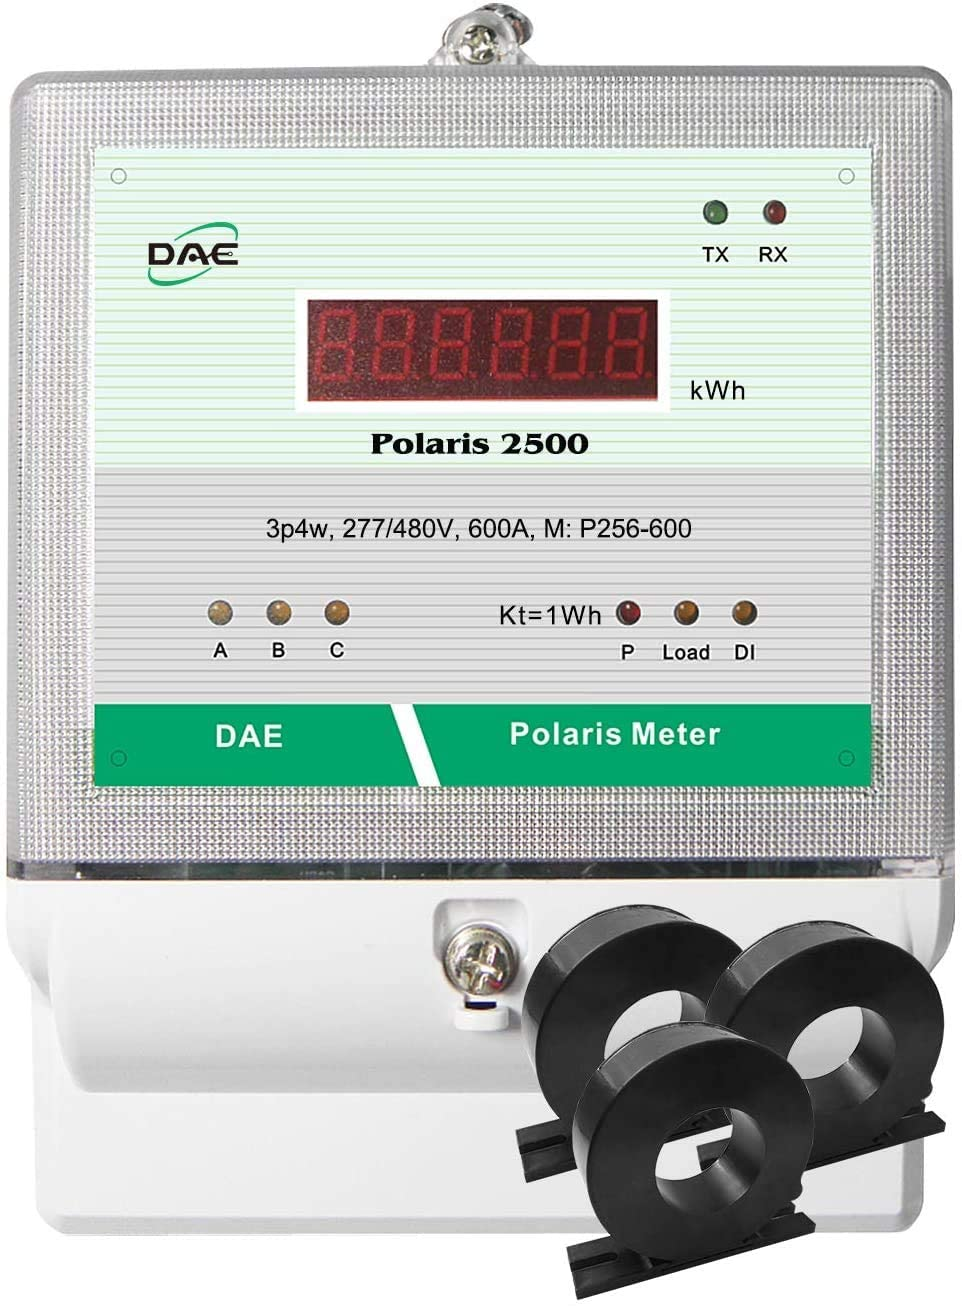 DAE P256-600-S KIT, 600A, 277/480v, UL kWh Smart Submeter, 3P4W (3 hot wire,1 Neutral), 3 CTs (inner dia. 1.38